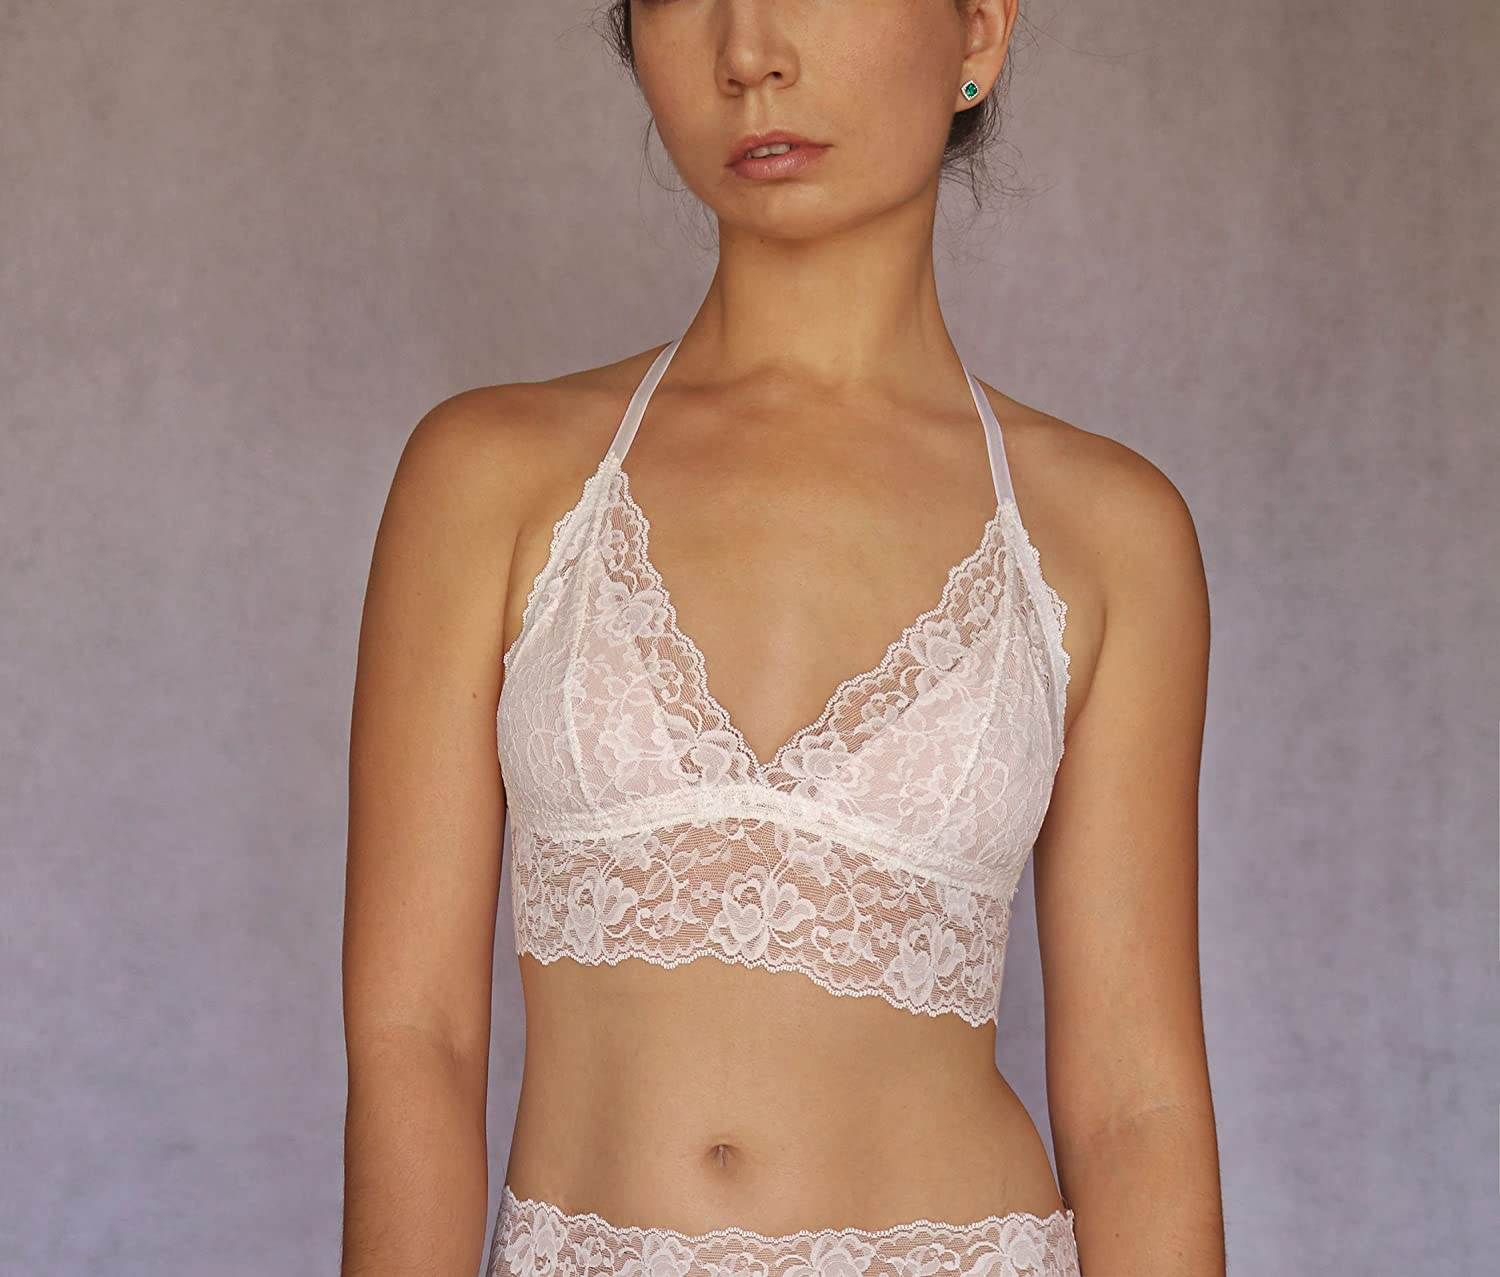 38e06d0326 Amazon.com  Ivory Lace Bralette. Bridal Lingerie. Wedding Underwear. Floral  Embroidered Lace Wireless Bra Top.  Handmade